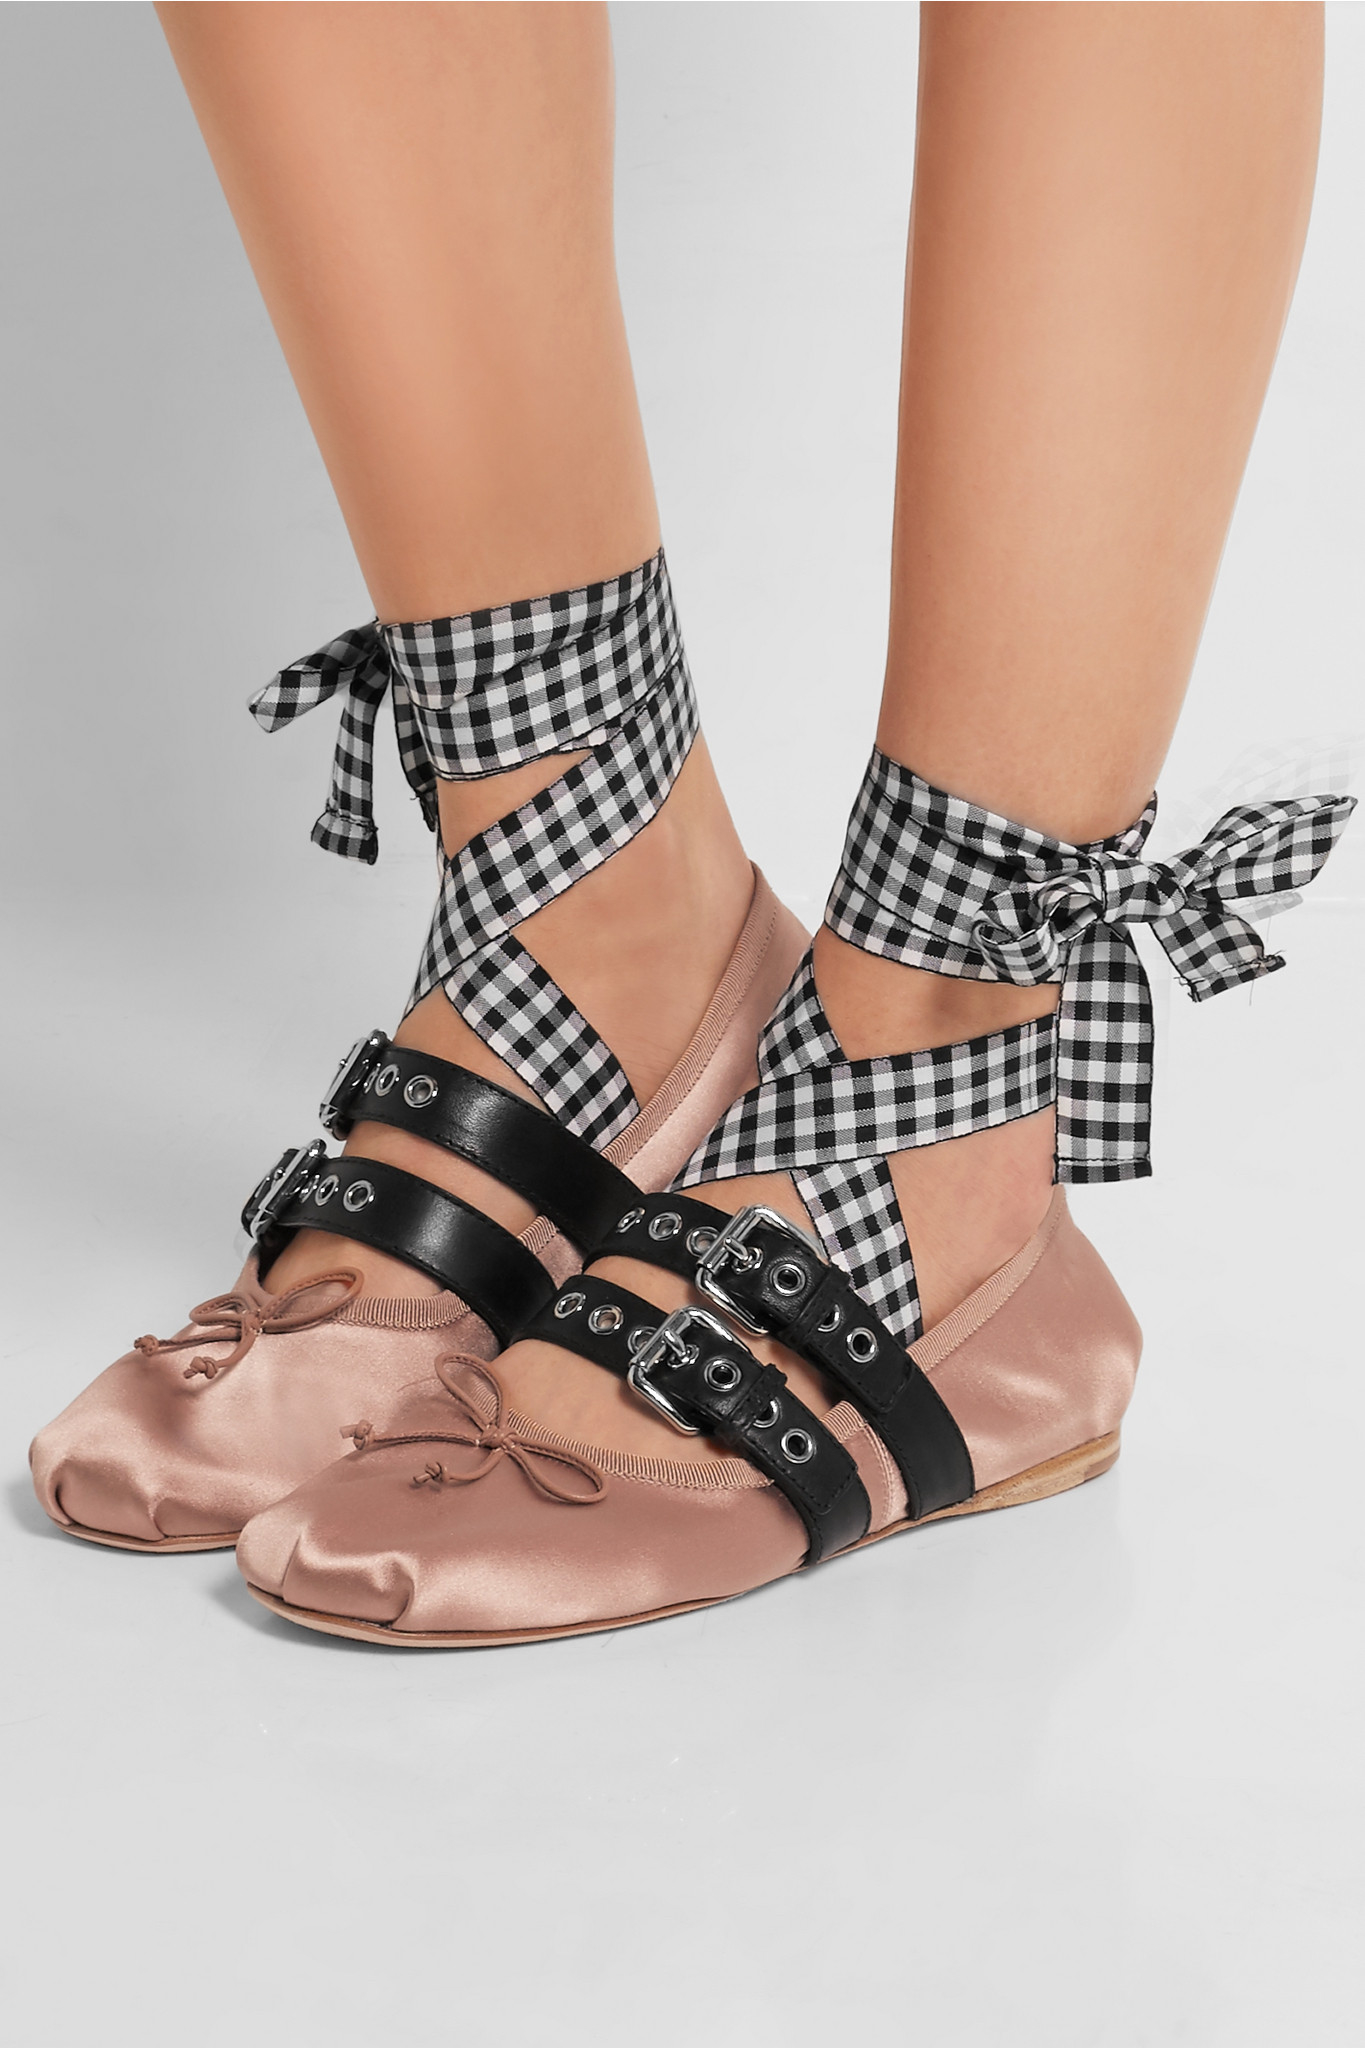 5c09a356a76b7 Miu Miu Buckled Leather And Satin Ballet Flats in Pink - Lyst